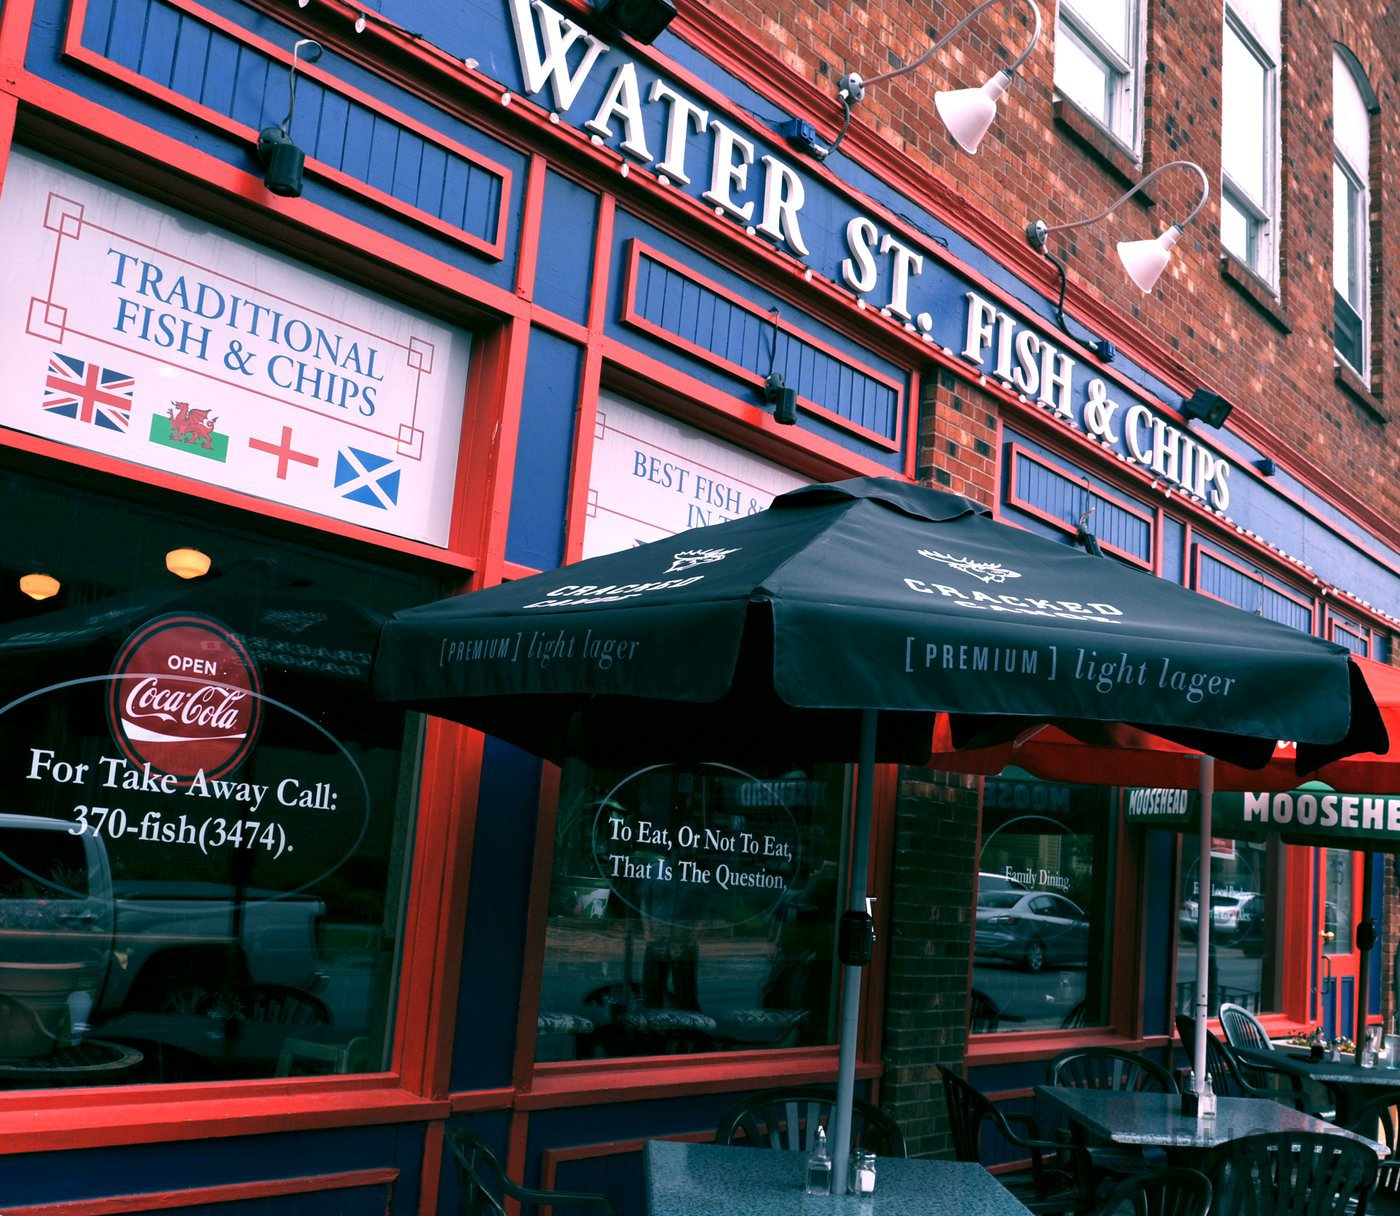 Water St. Fish and Chips restaurant in Charlottetown